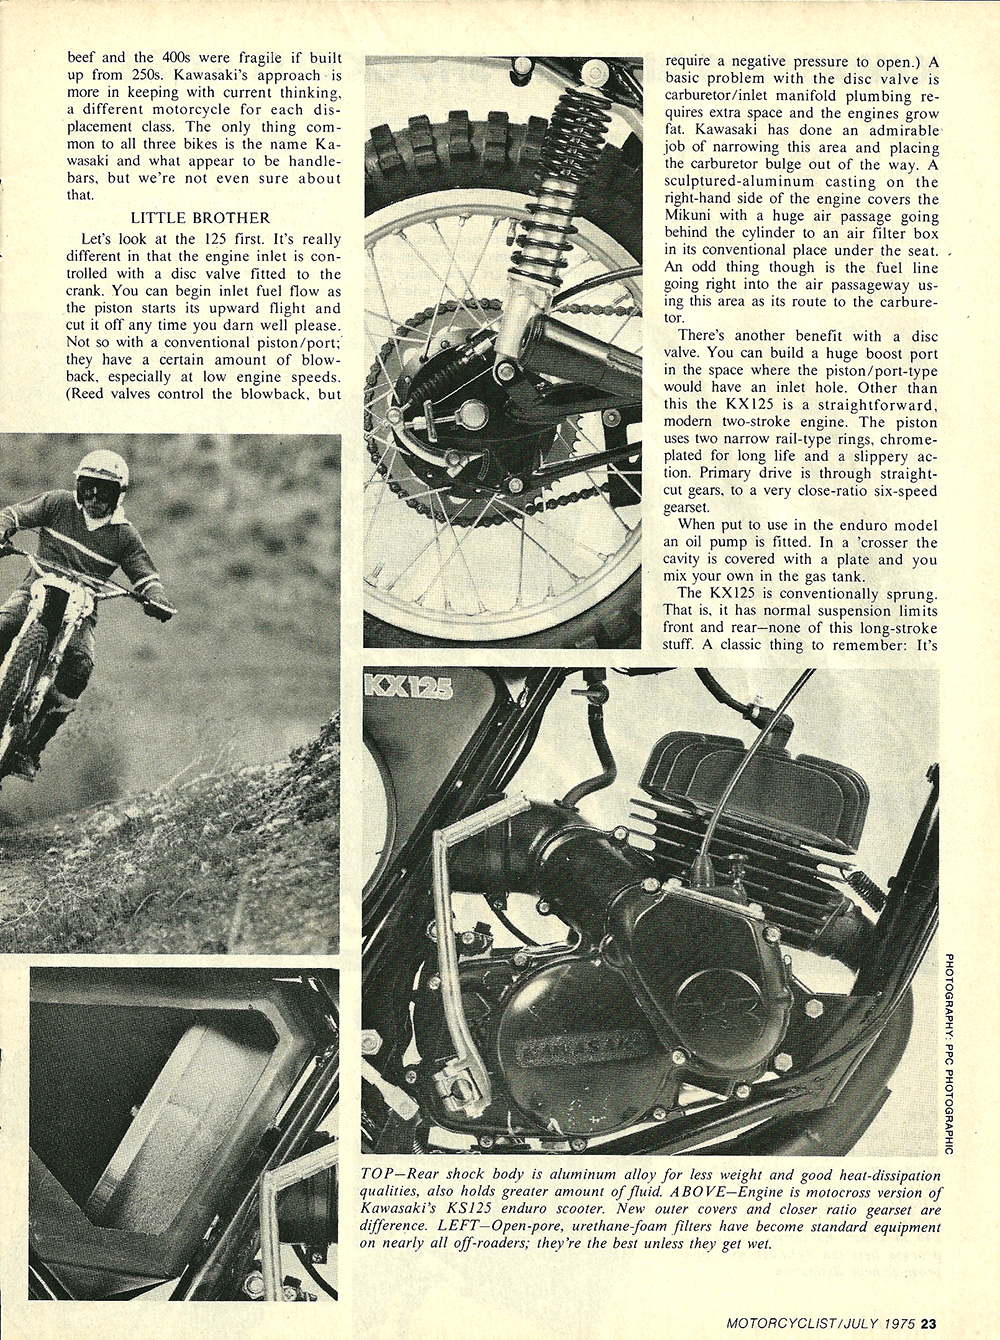 1975 Kawasaki KX 125 250 400 road test 4.jpg